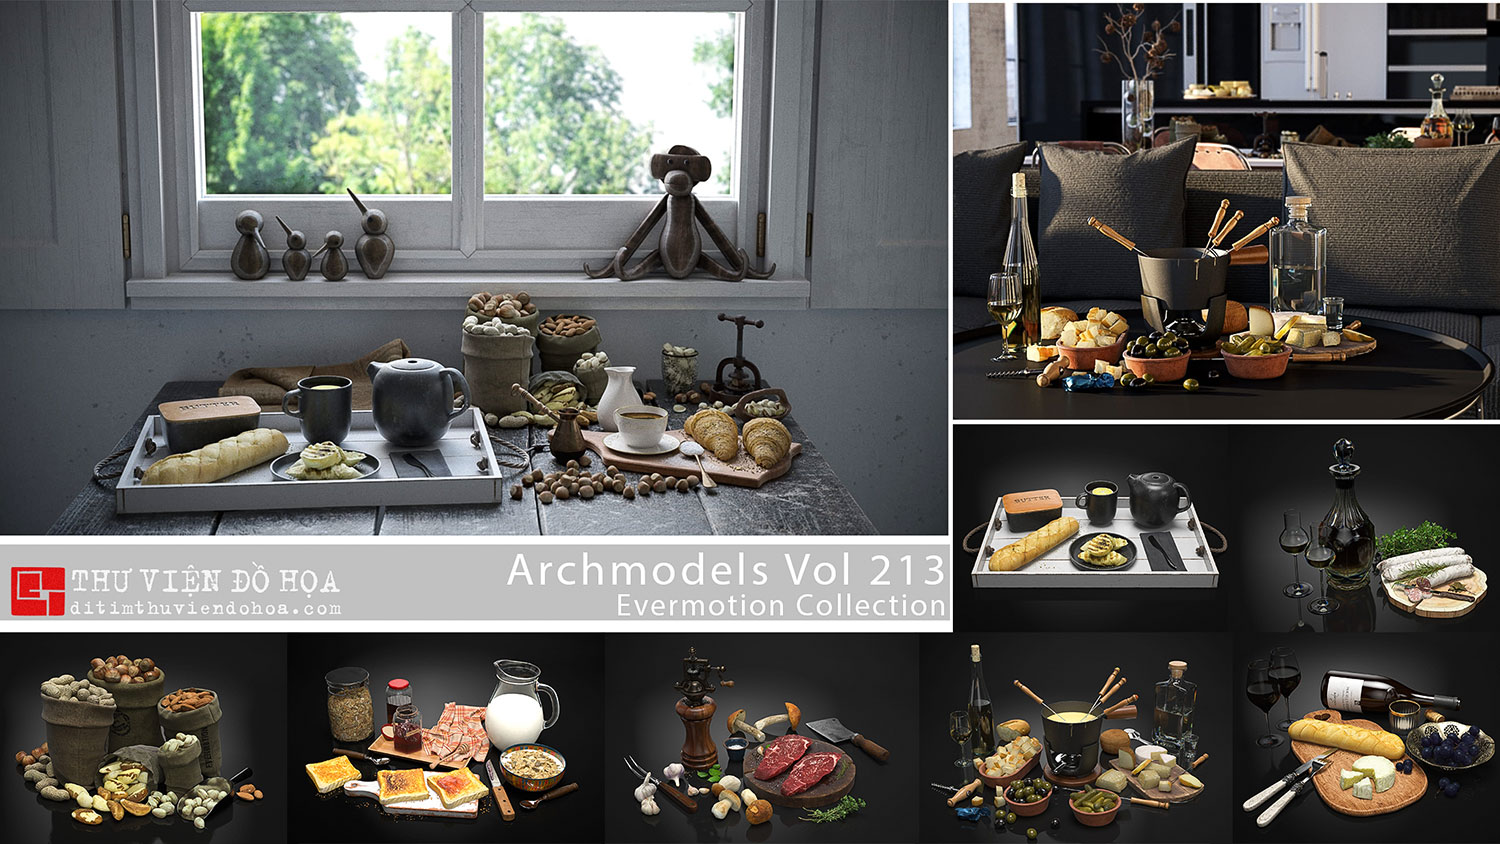 Evermotion Archmodels Vol 213